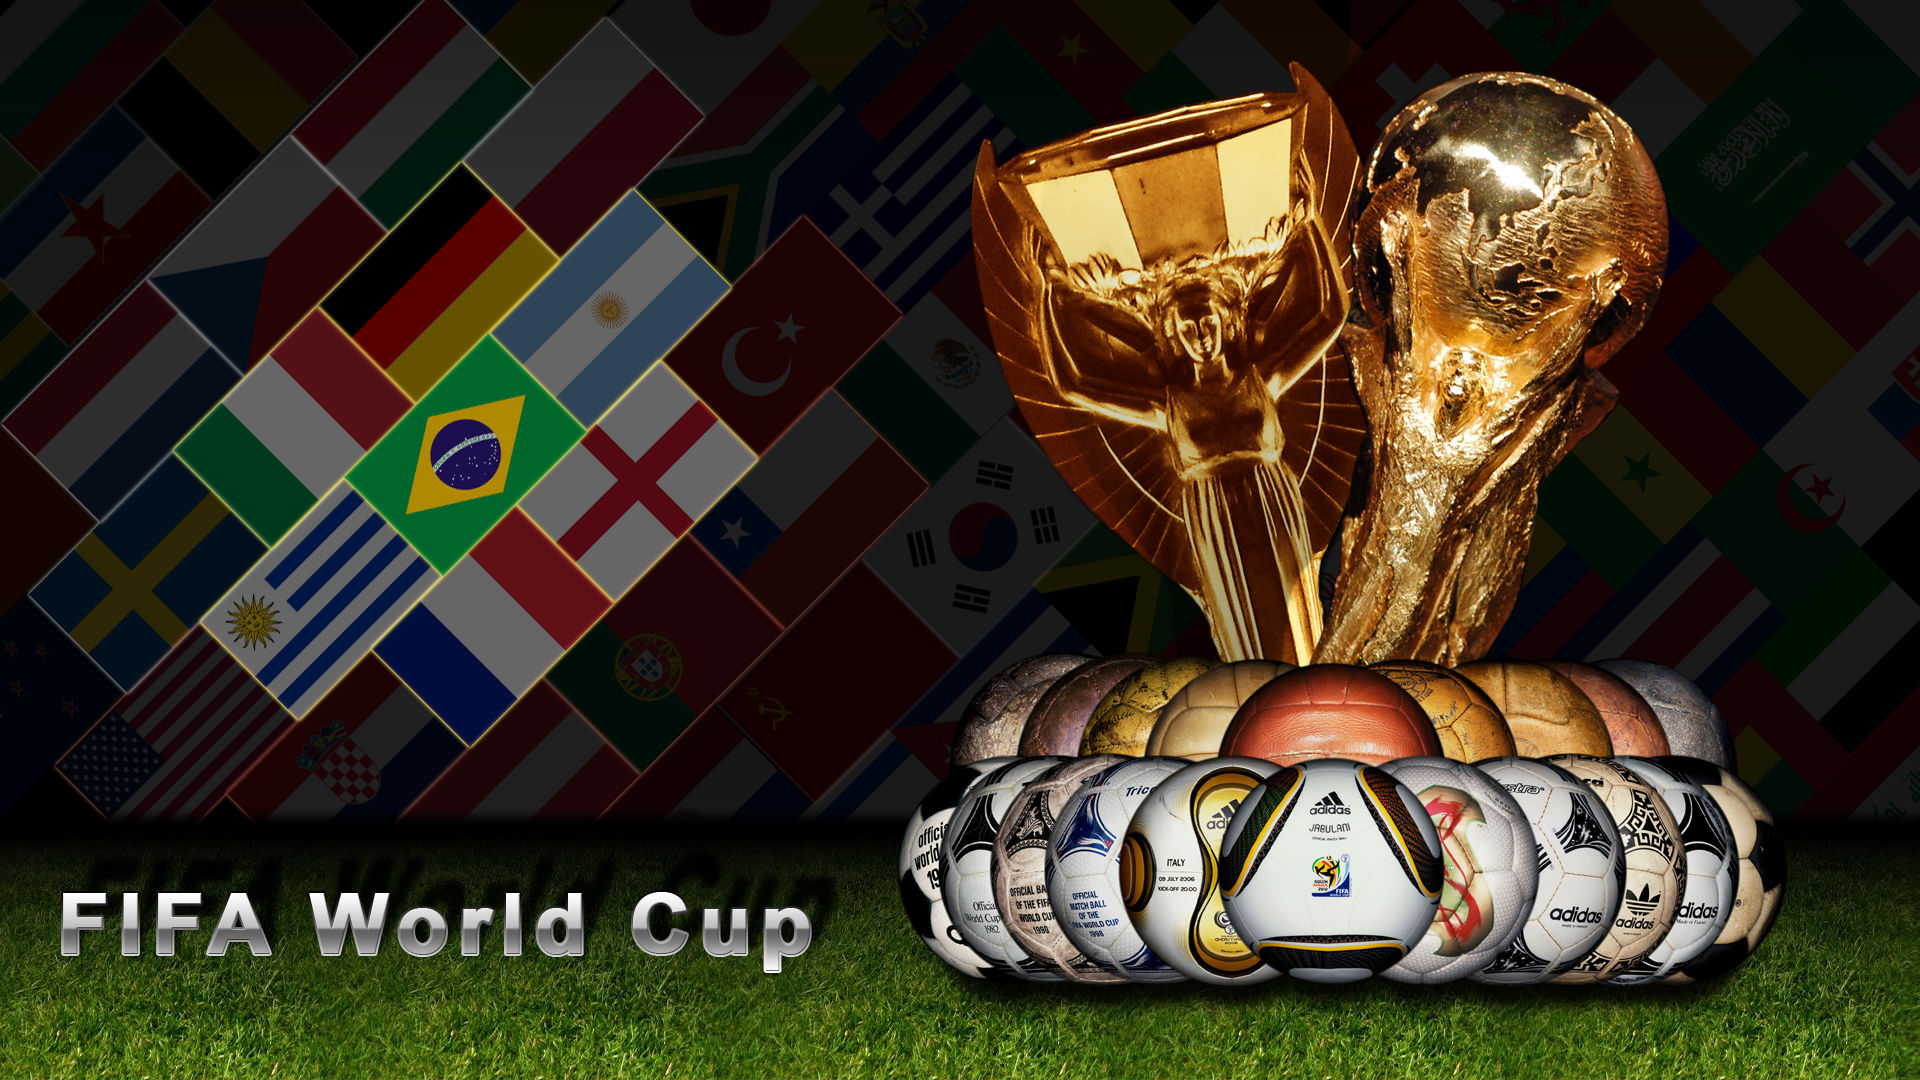 FIFA_World_Cup_by_crz4all